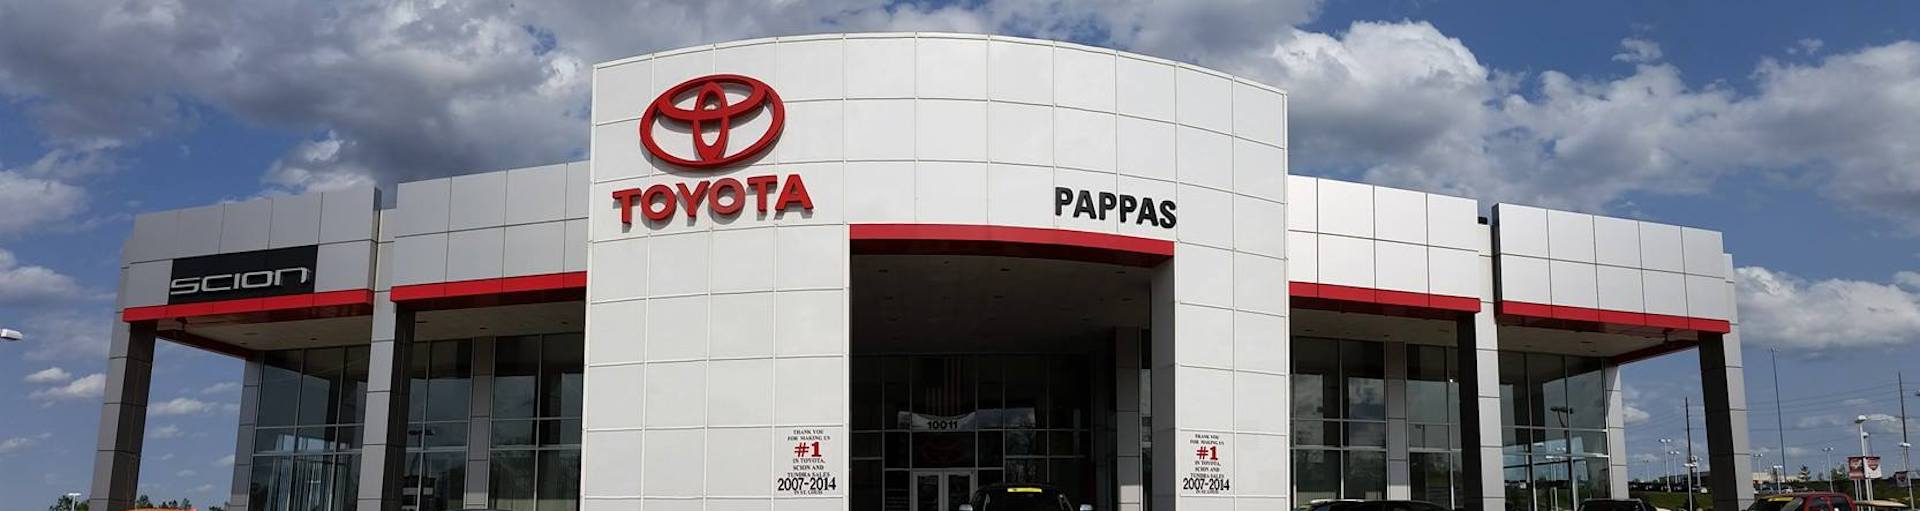 Pappas Toyota Service